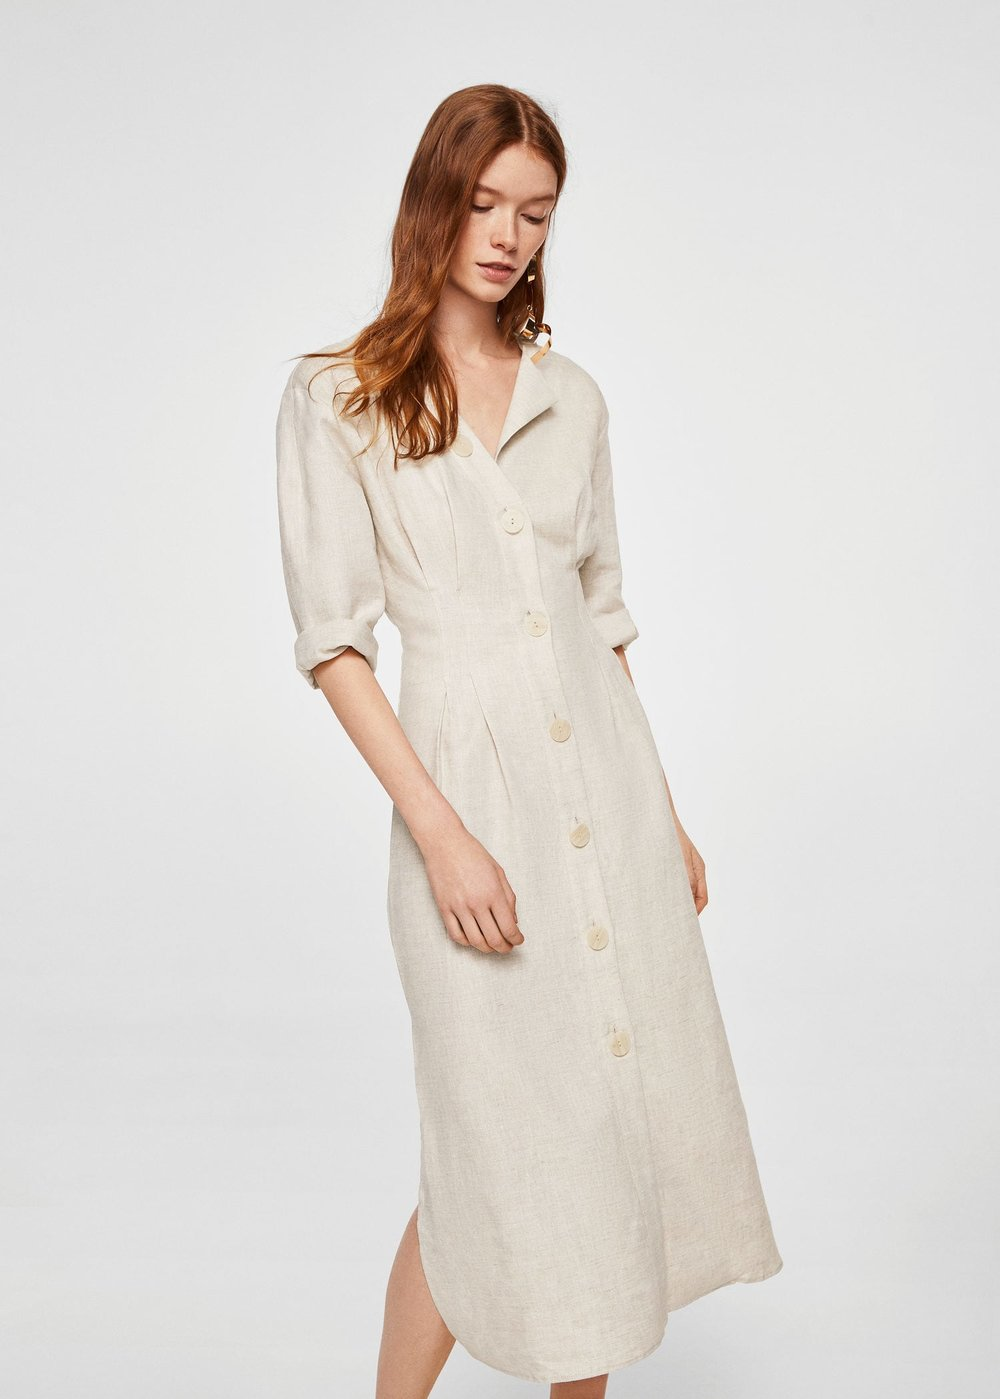 Mango_Cream_Linen_Dress.jpg